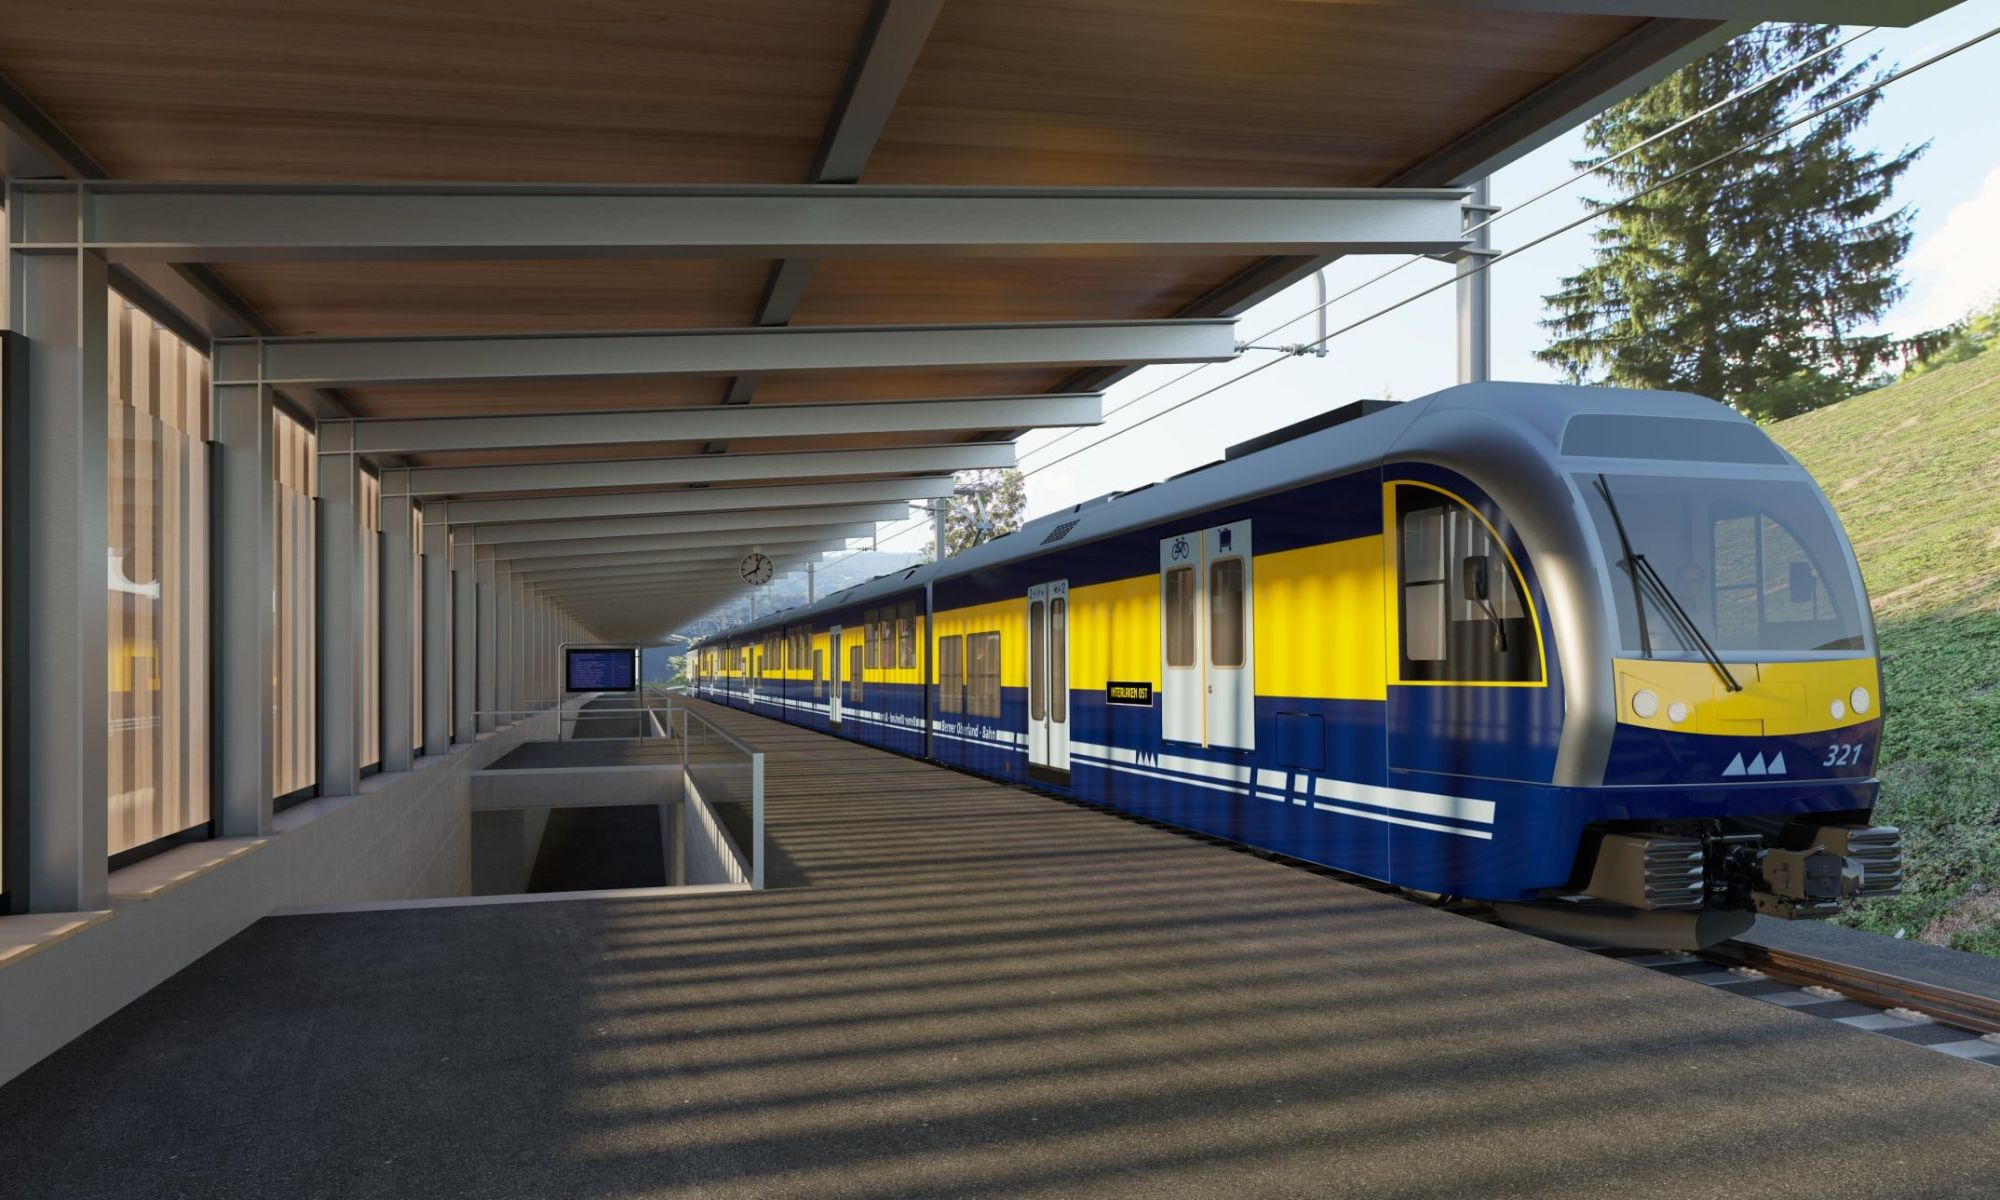 Jungfrau v-bahn railway project gets green light.